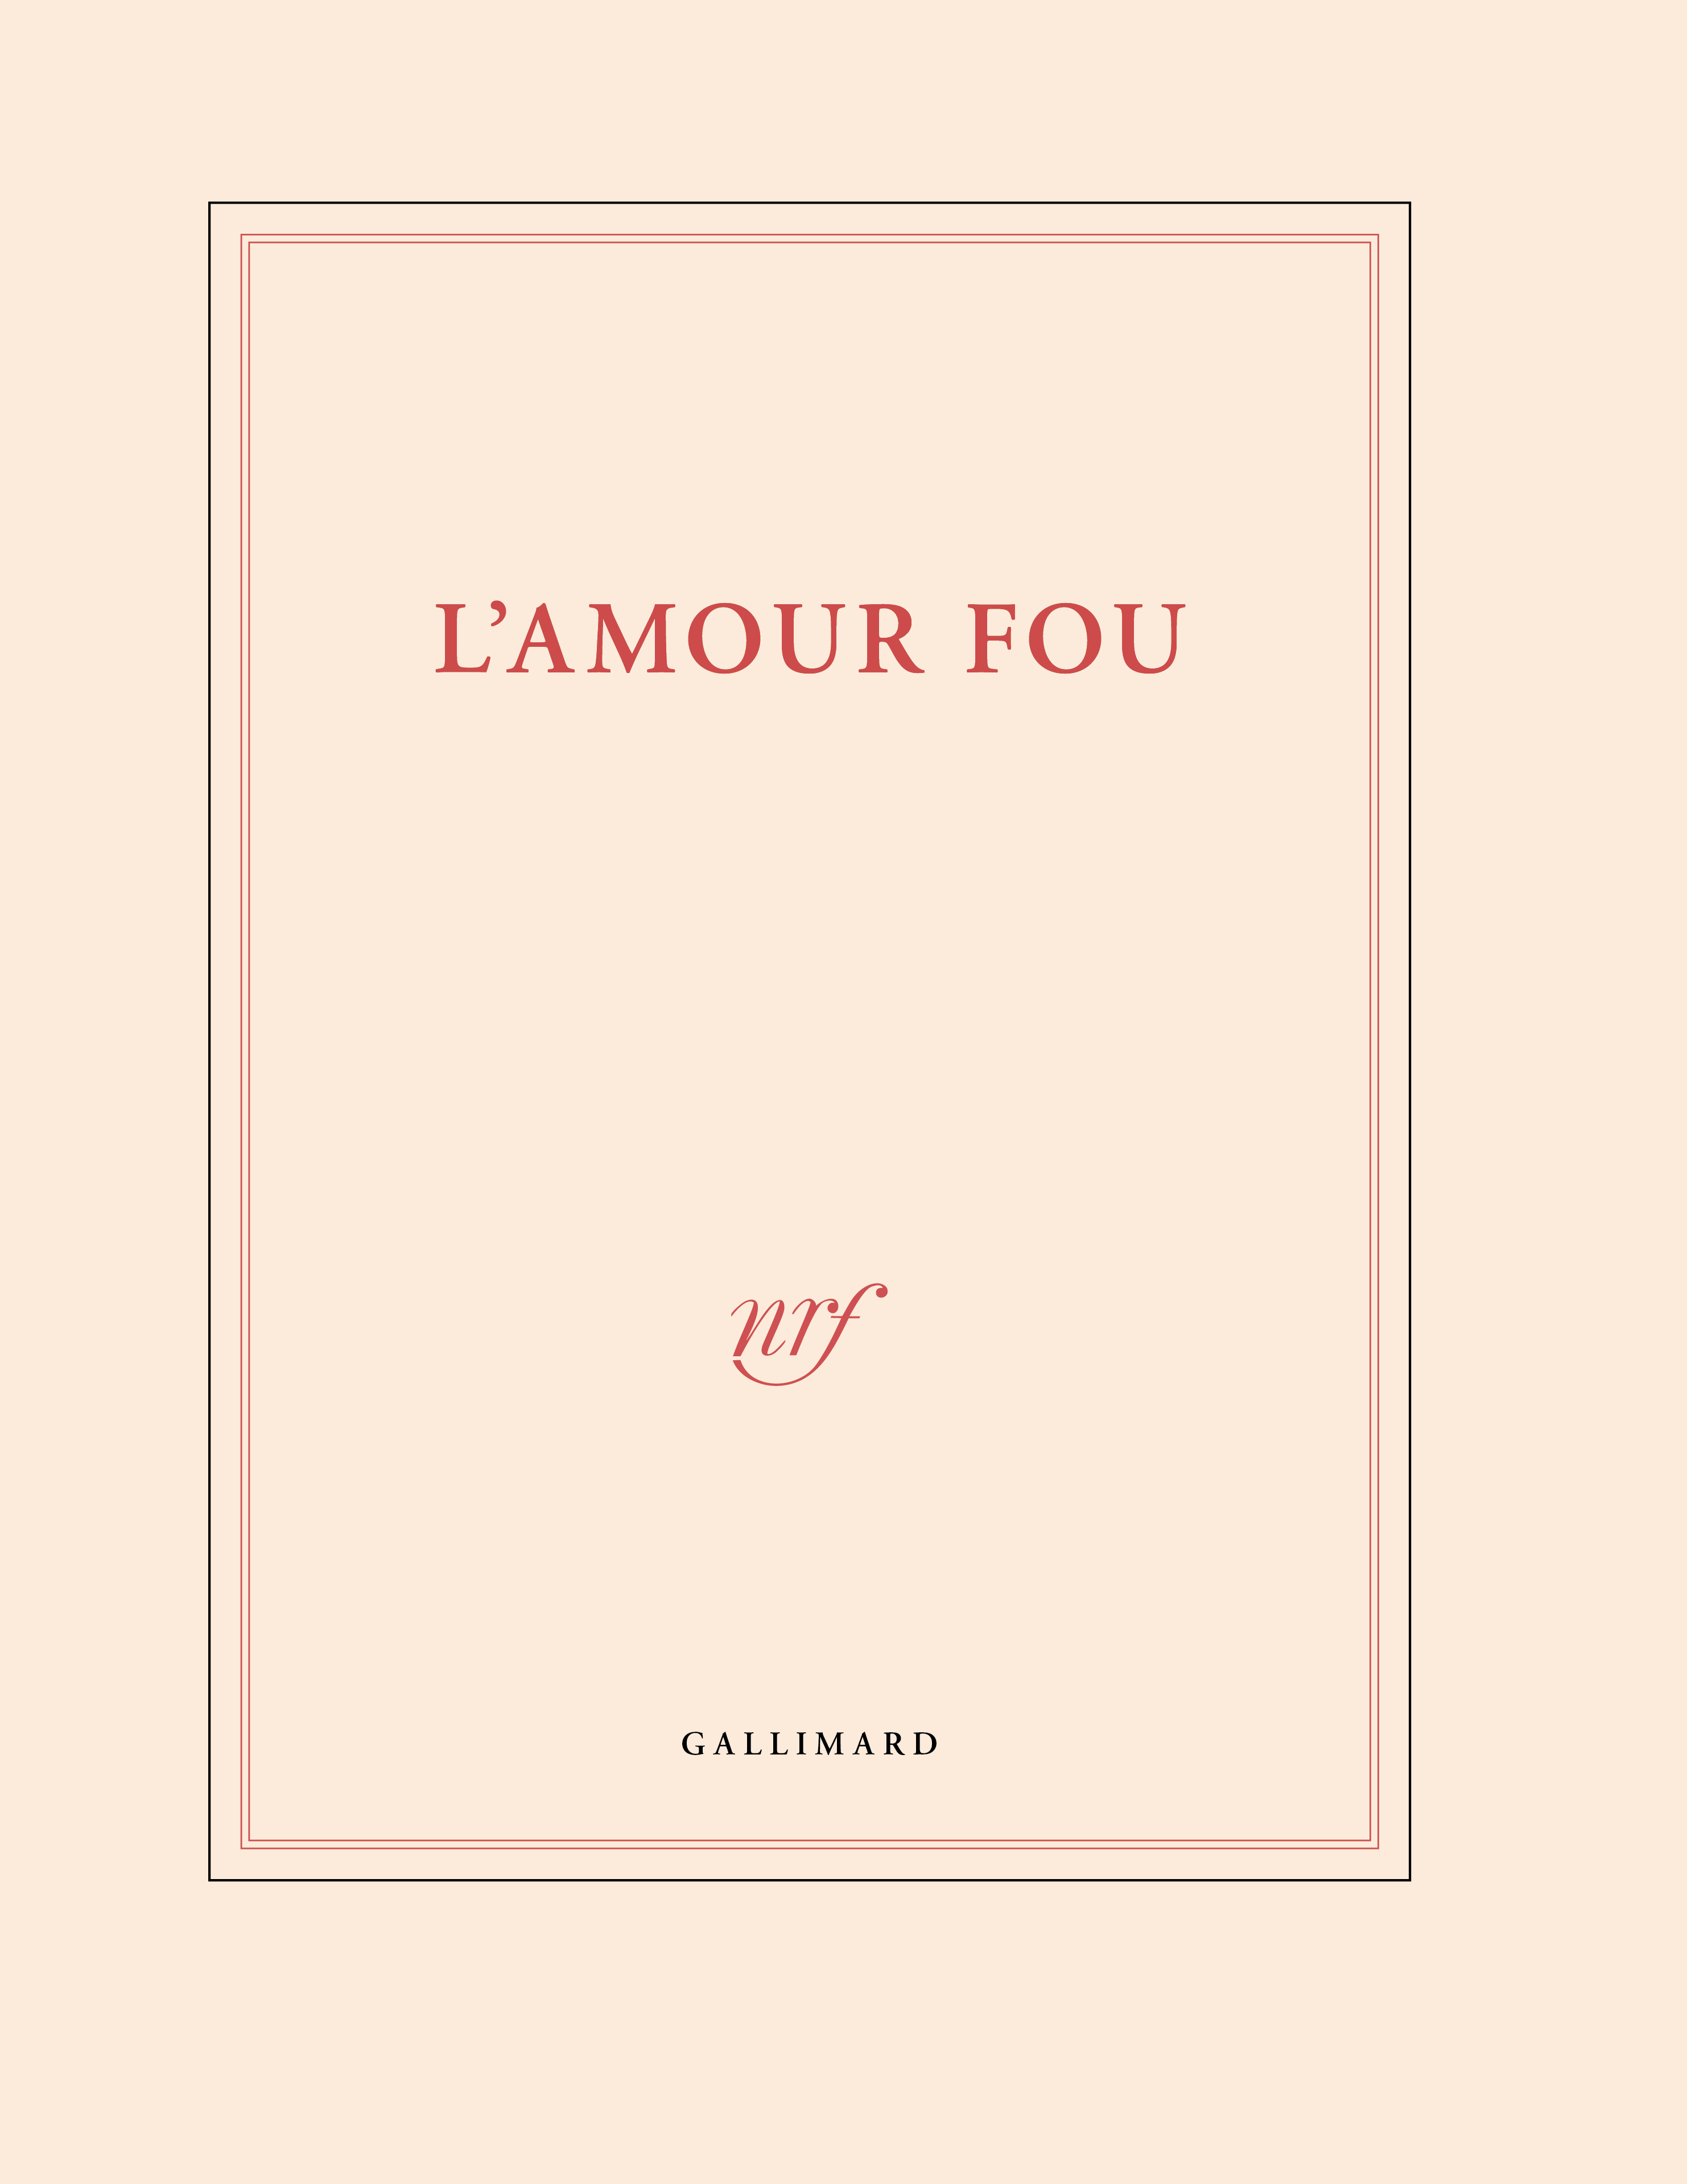 GD CAHIER BLANC L'AMOUR FOU 25X32,5CM 144 P BLANCHES